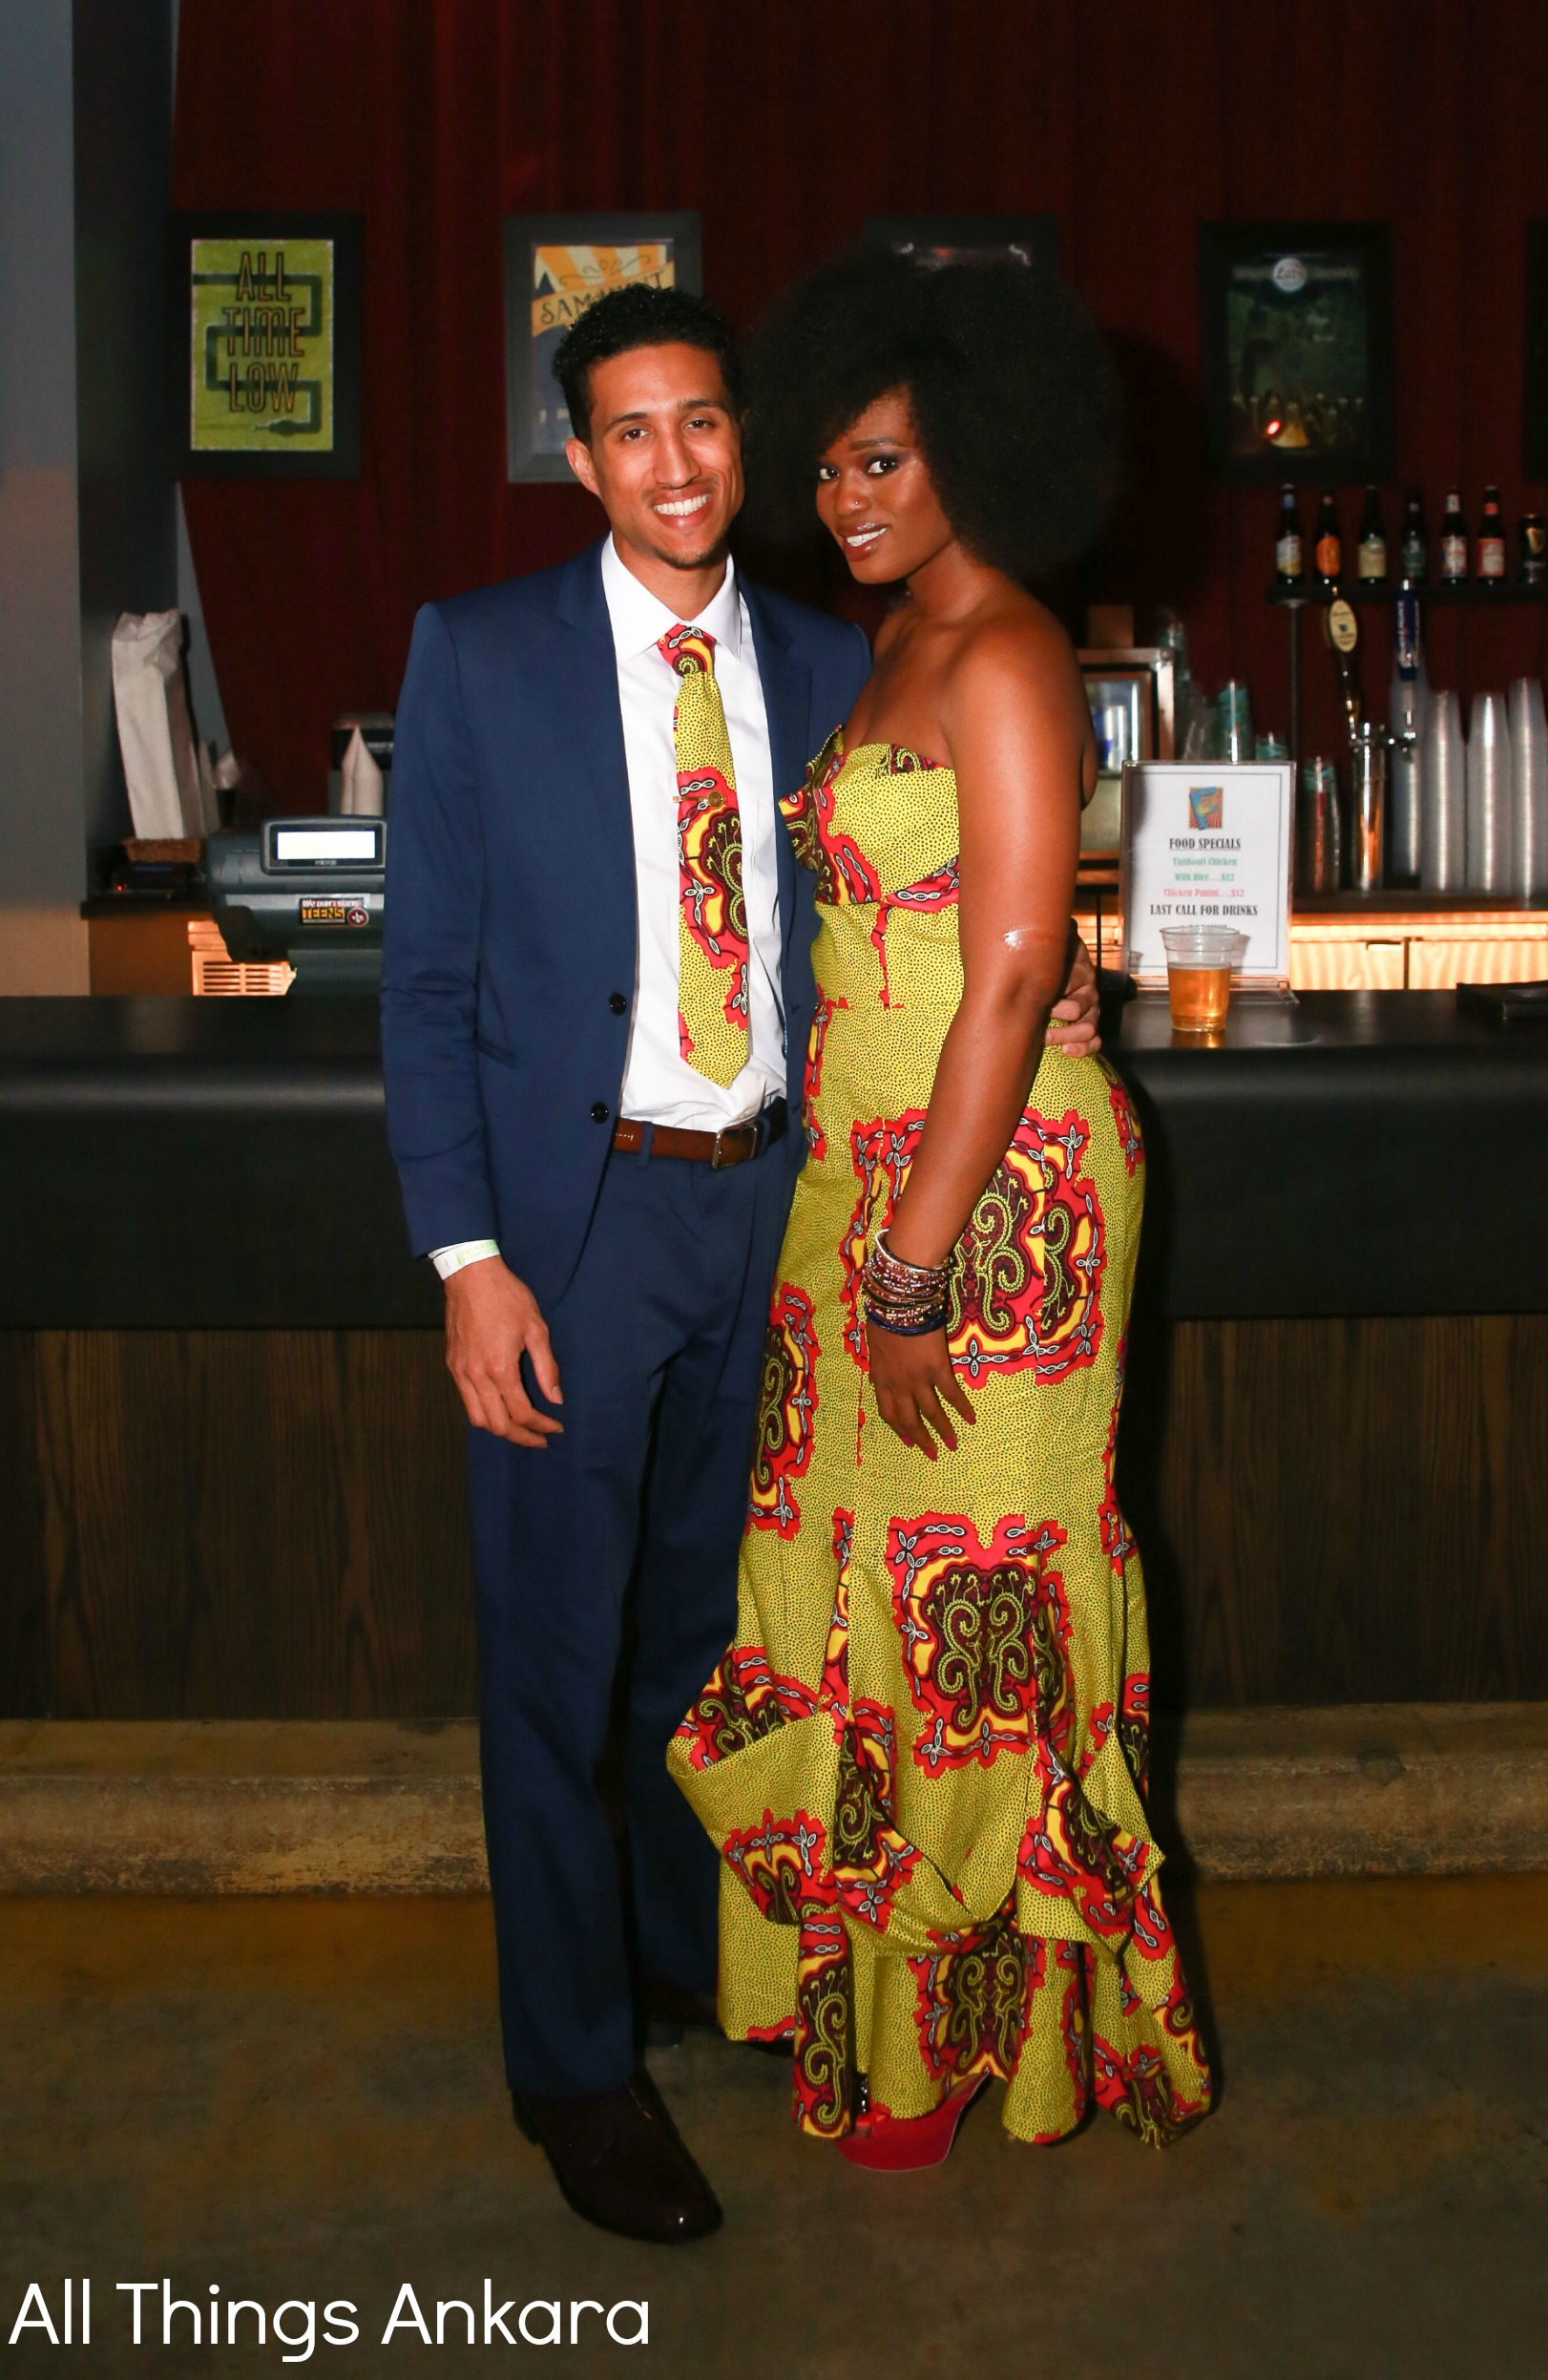 ball-gwb-commissions-best-dressed-couples-at-gwb-commissions-7th-annual-green-white-blue-ball-2016-2